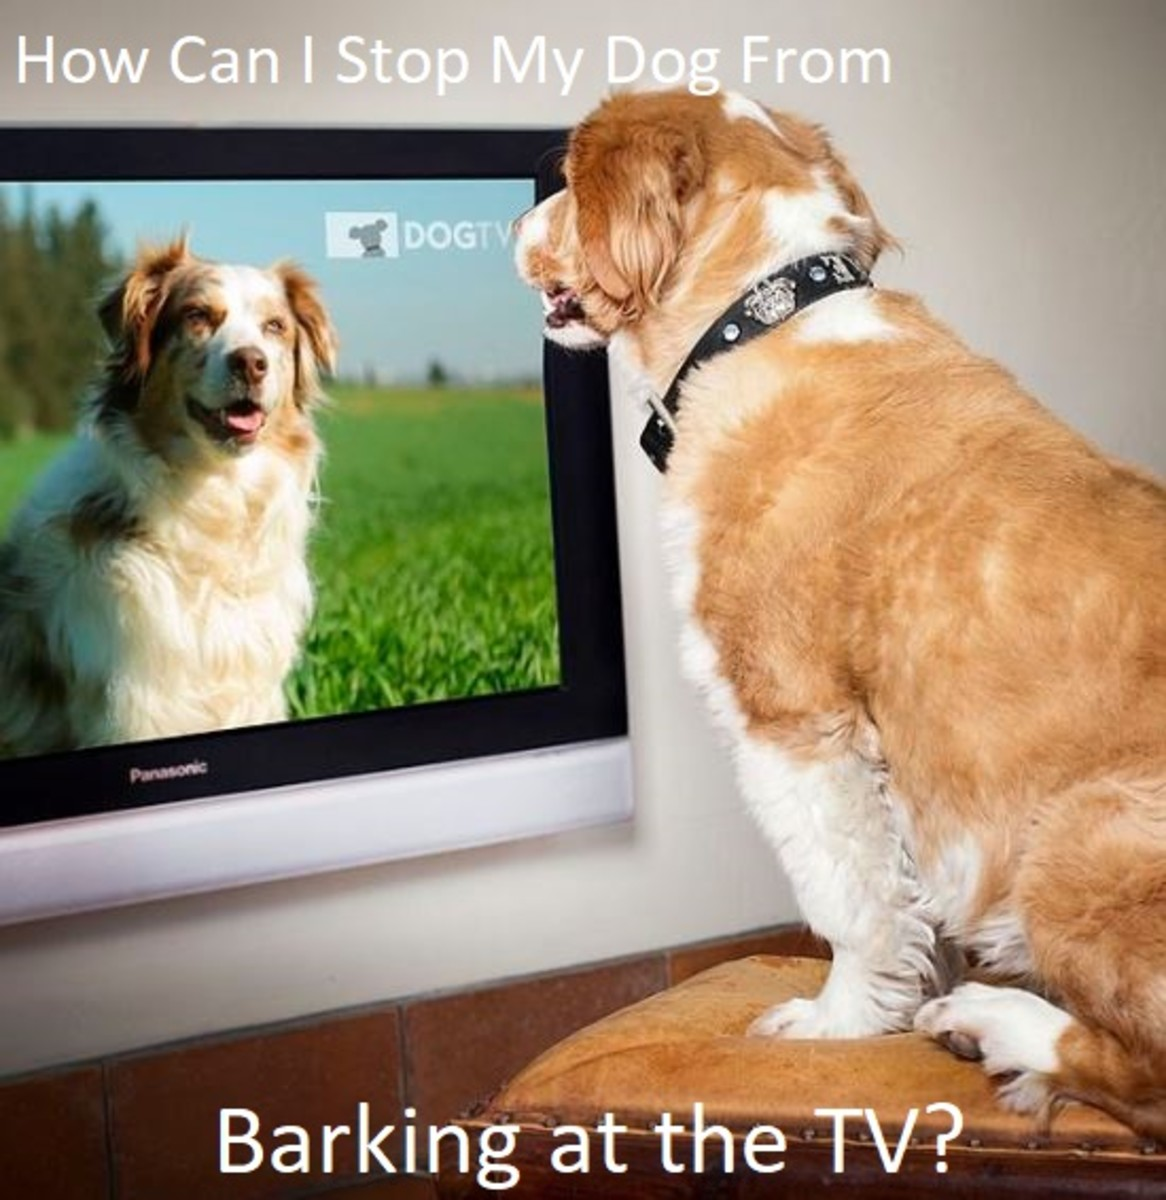 How to Stop Your Dog From Barking at the TV? Ask a Dog Trainer